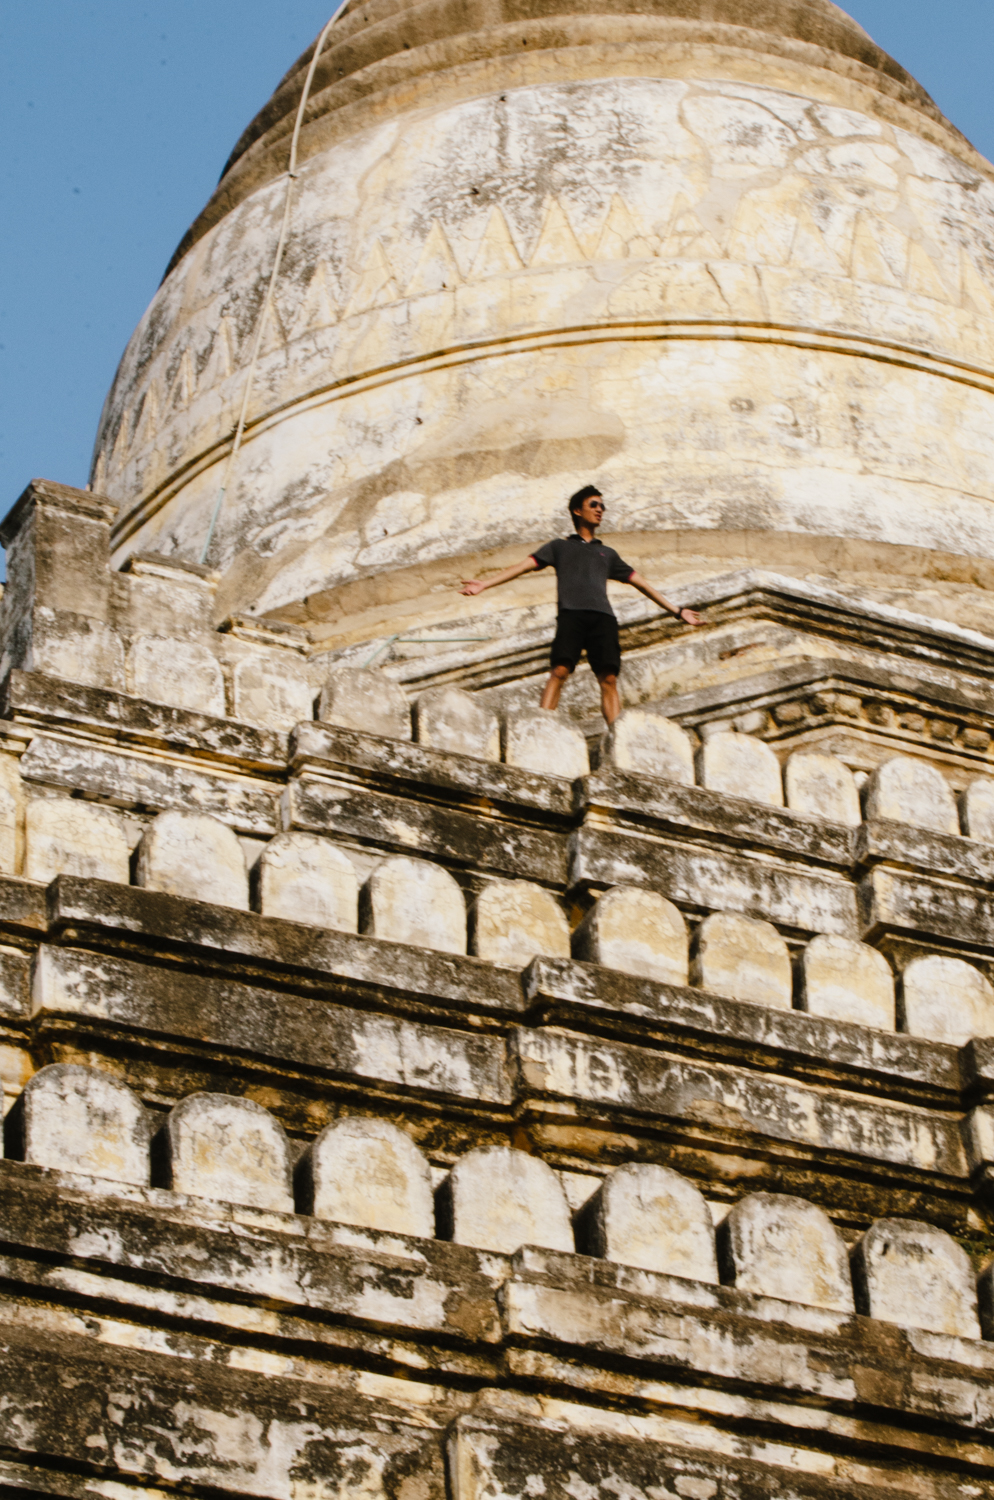 Yet another image of Jason, taken on a temple in Bagan, Myanmar.